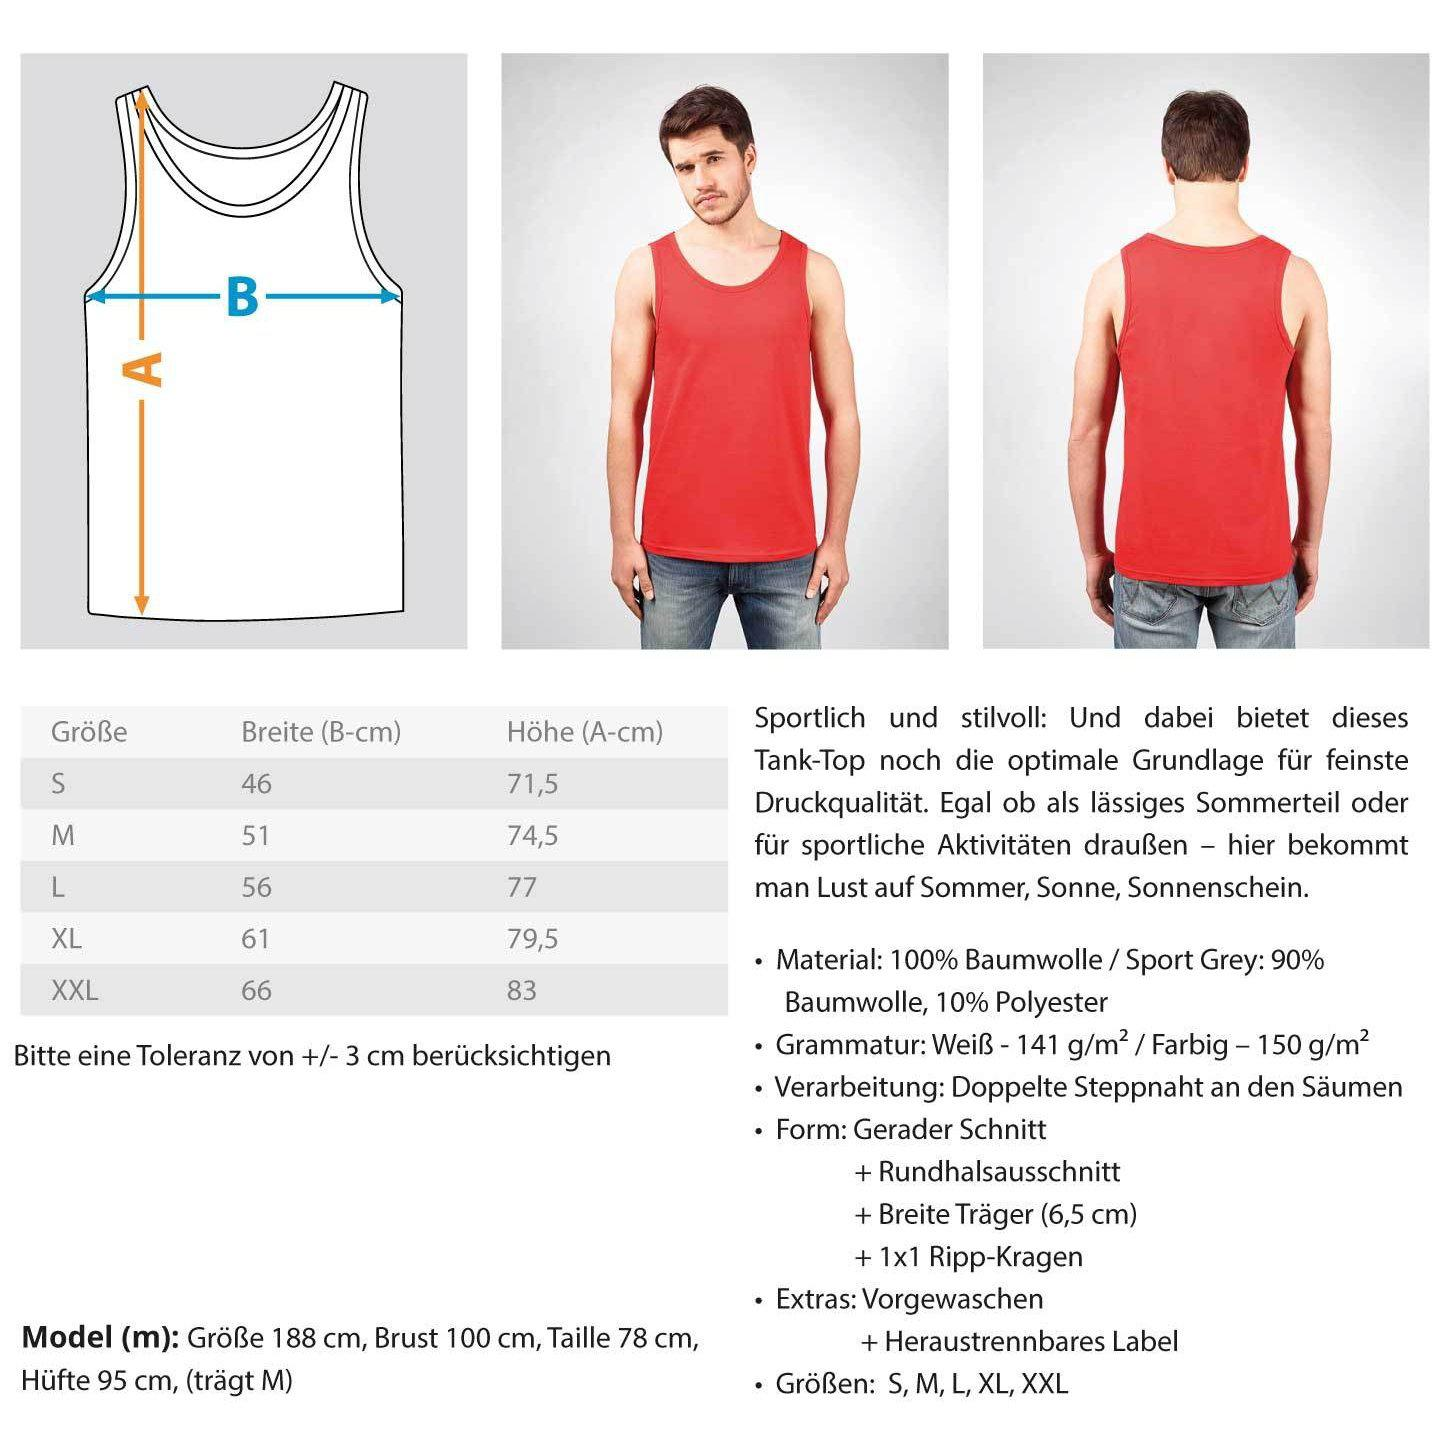 Ich Zieh das... white - Rave On!® - Herren Tanktop Herren Tank-Top - Rave On!® der Club & Techno Szene Shop für Coole Junge Mode Streetwear Style & Fashion Outfits + Sexy Festival 420 Stuff